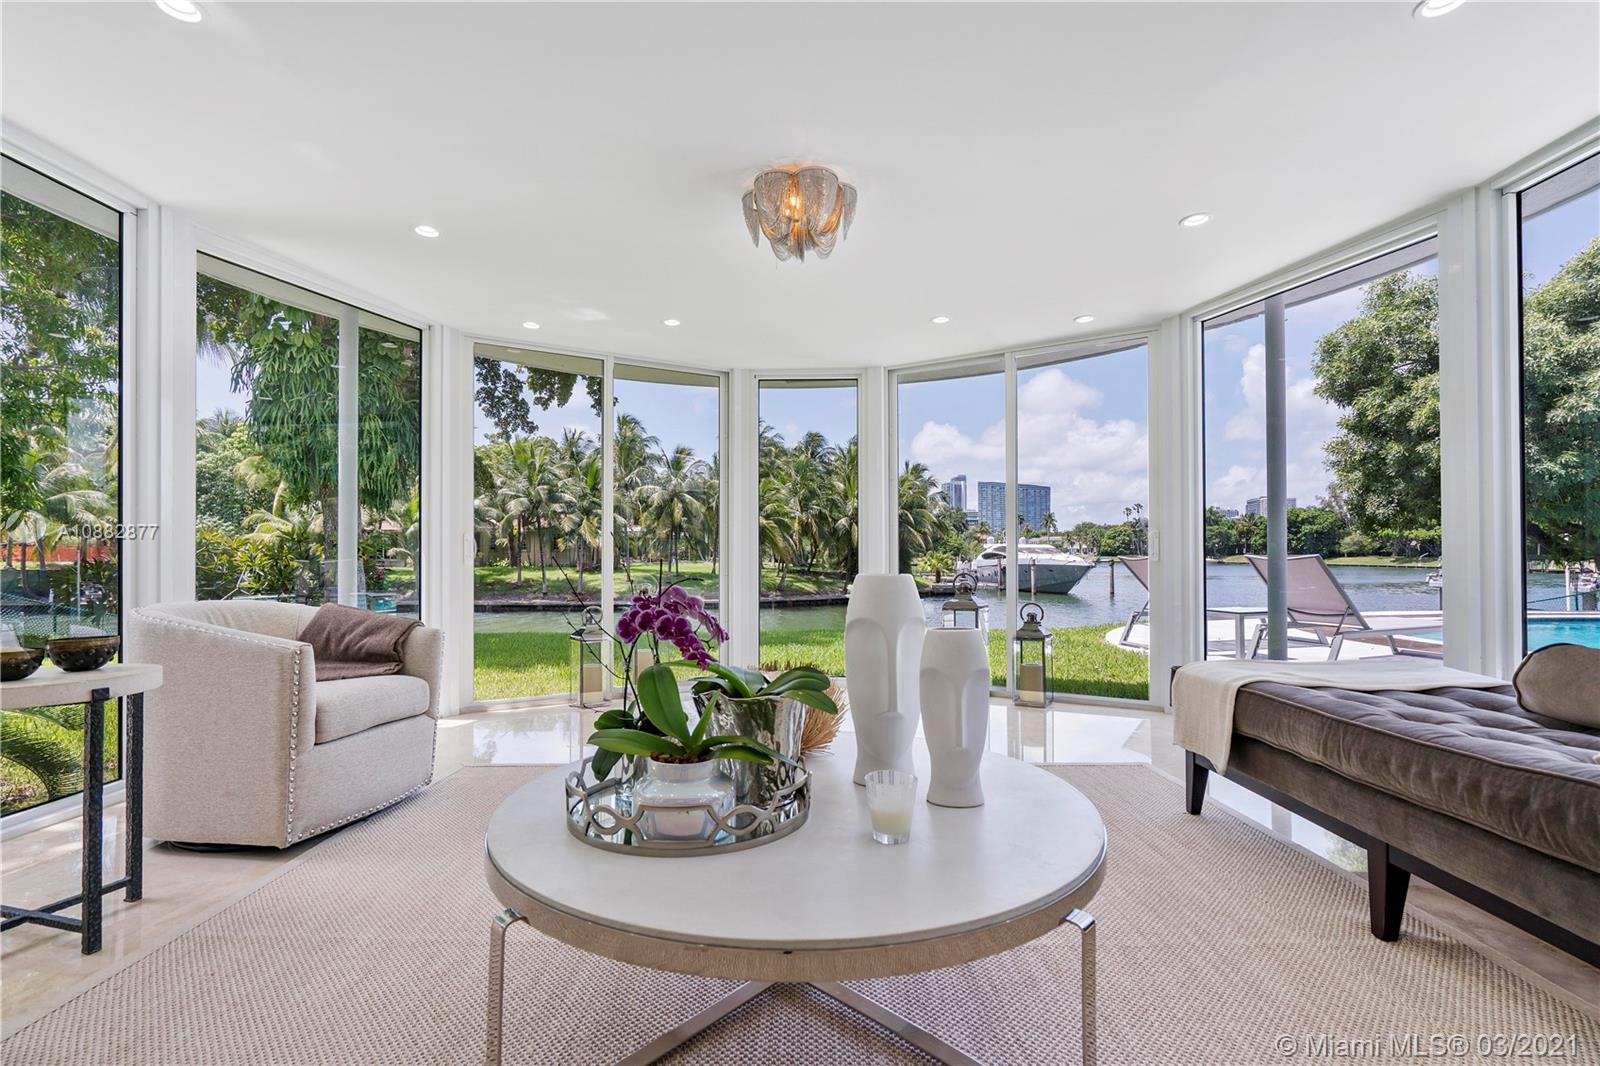 ONE-OF-A KIND PRIME ESTATE WITH 123 FEET OF WATERFRONT AND UNOBSTRUCTED BAY AND SABAL LAKE VIEWS LOCATED IN SOUGHT AFTER BAY POINT PRIVATE GATED COMMUNITY. Make a fresh start or expand up to 9,000 SF this existing mid-century home built by renowned architect Wahl Snyder. This south facing 18,656 SF trophy lot offers a protected harbor with dream water and Miami skyline views from all property angles and uninterrupted yearlong coastal breeze. The substantially renovated 3 bed 3 bath current home may be rented or occupied during the design phase. This exclusive coveted community offers private roads patrolled by 3 security guards 24/7. Perfect for families looking to be close to the best private schools in Miami. Close to the Beach, Design District, Midtown, Wynwood,Museum and Art's District